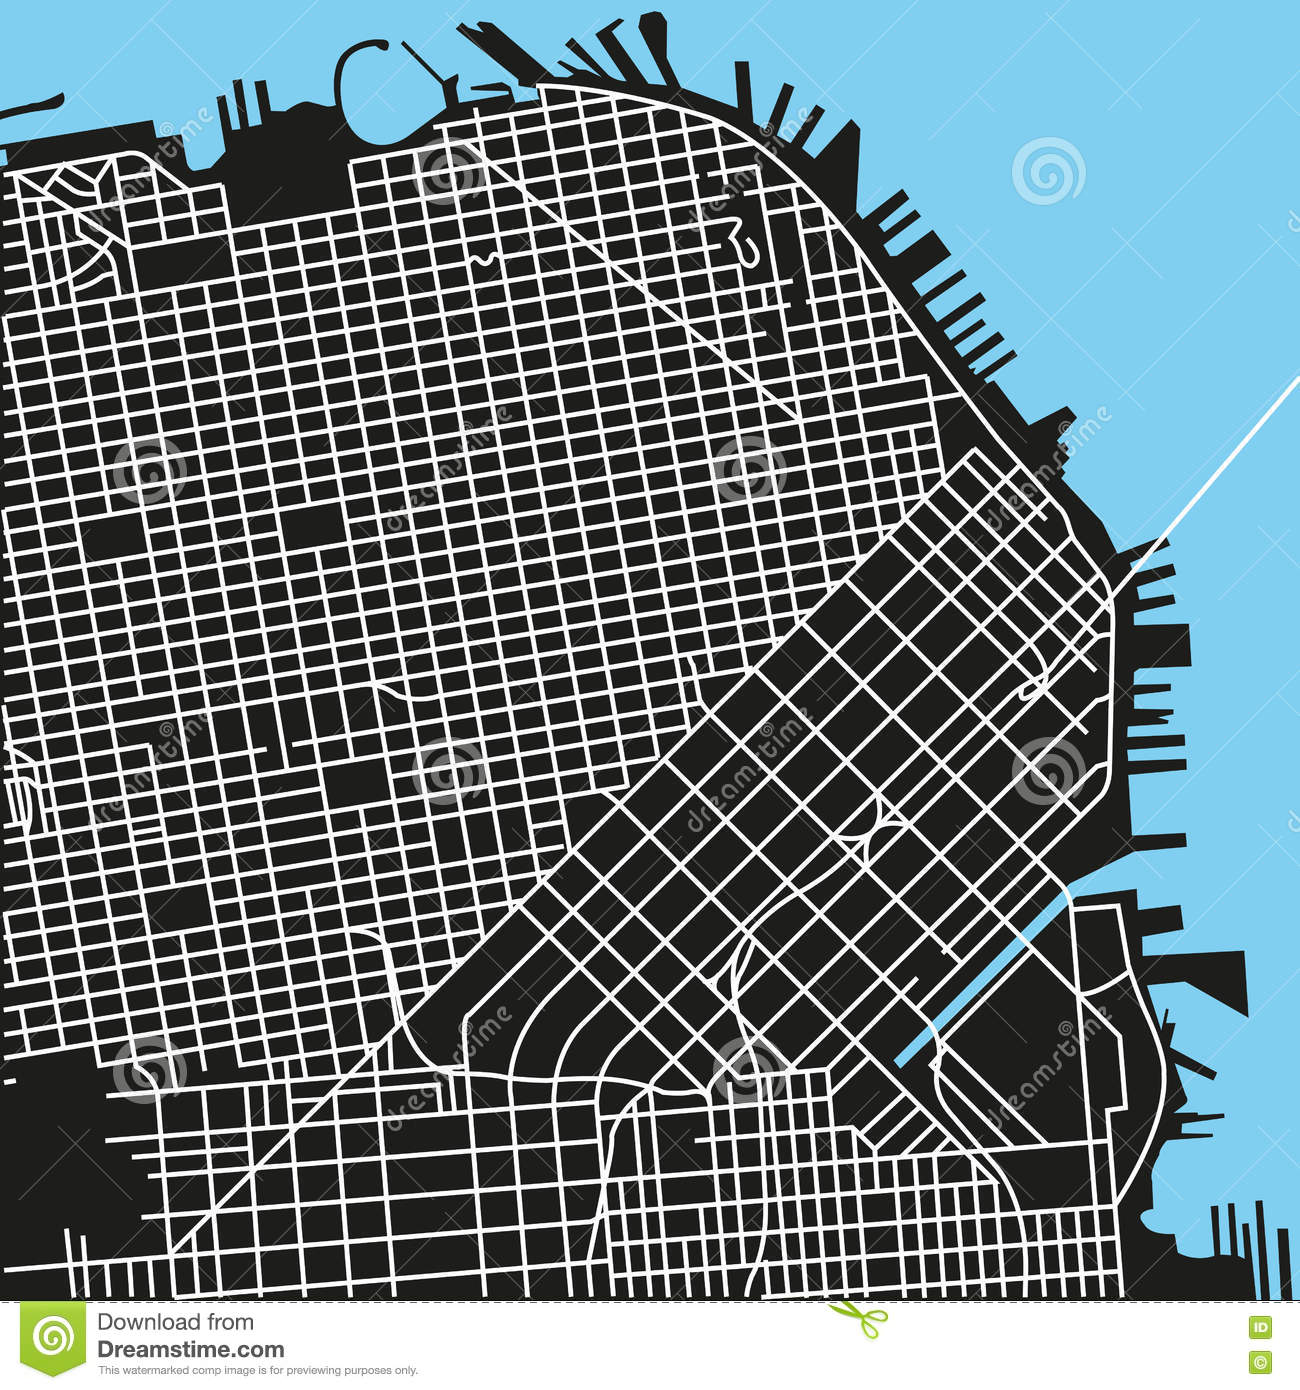 San Francisco Vector Map Stock Vector Image Of Road - San francisco map vector free download